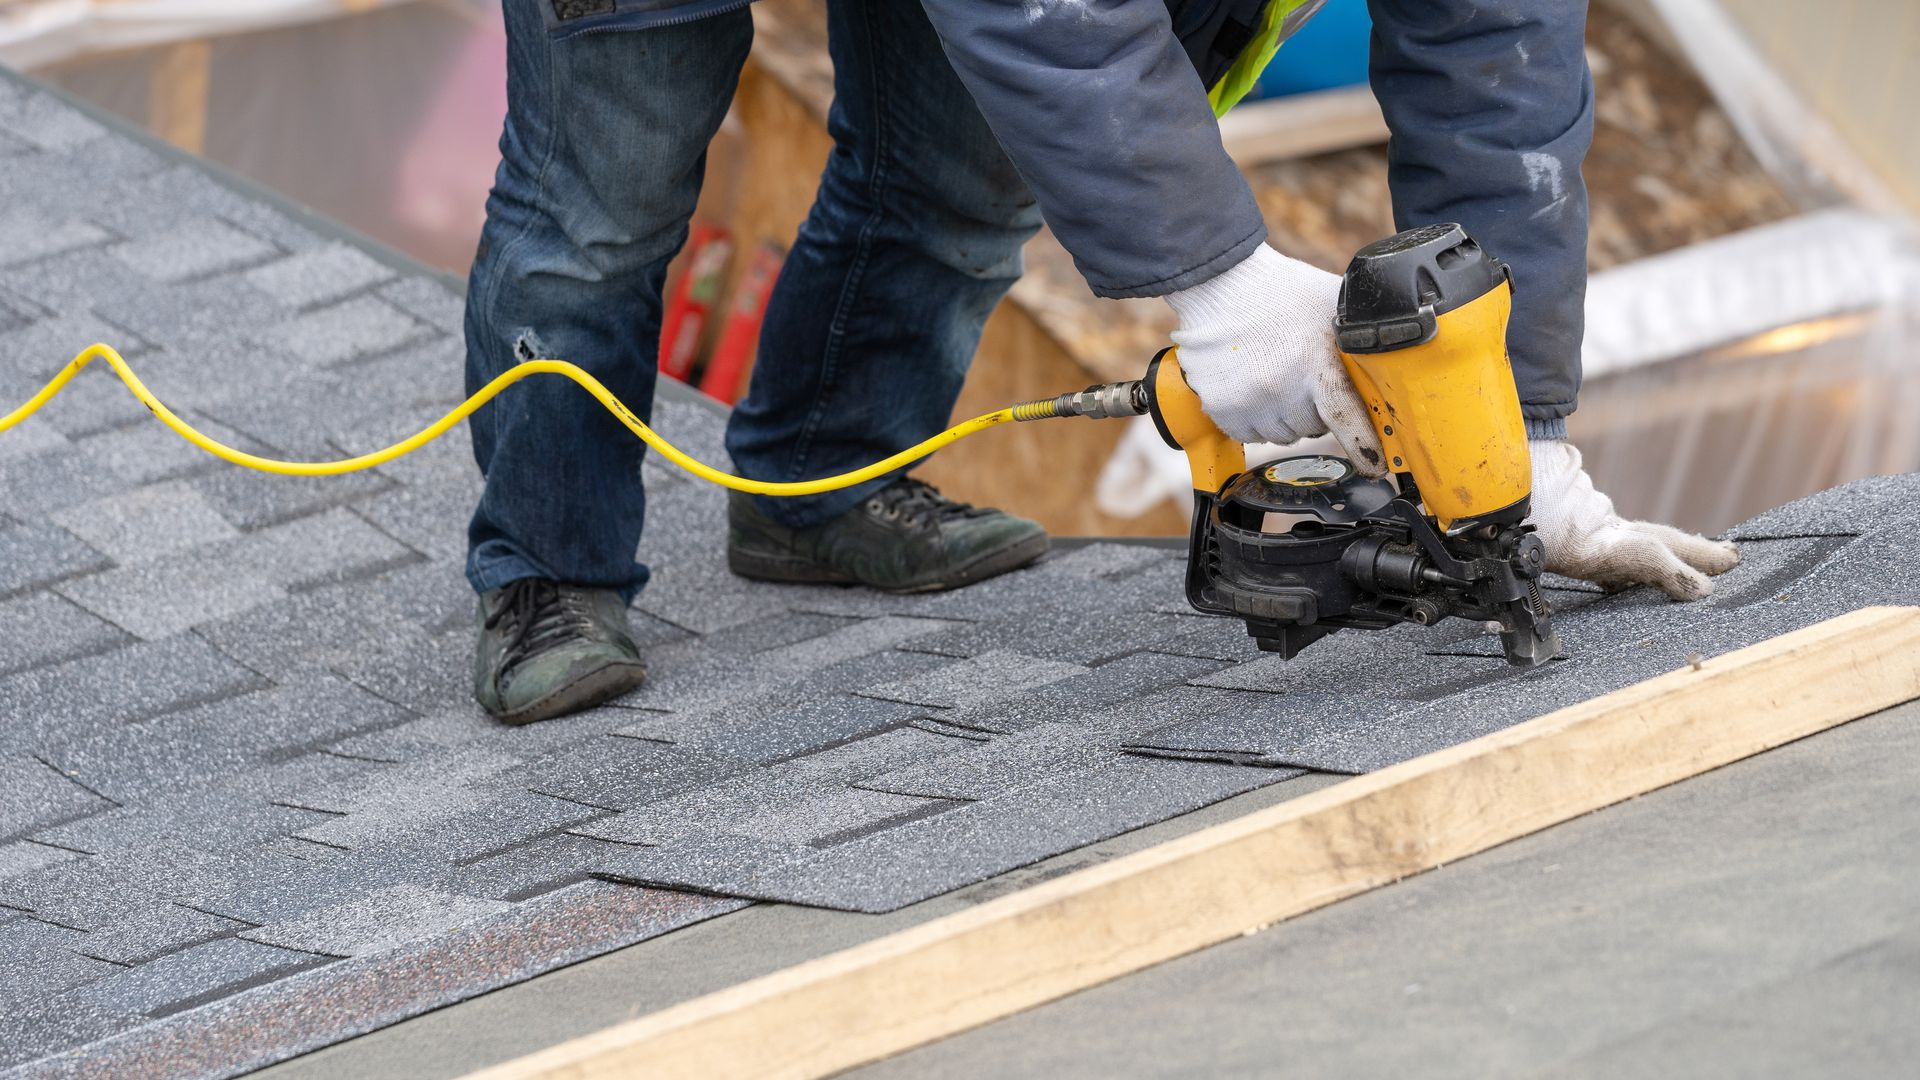 Let Our Houston Roofing Company Help Protect Your Home